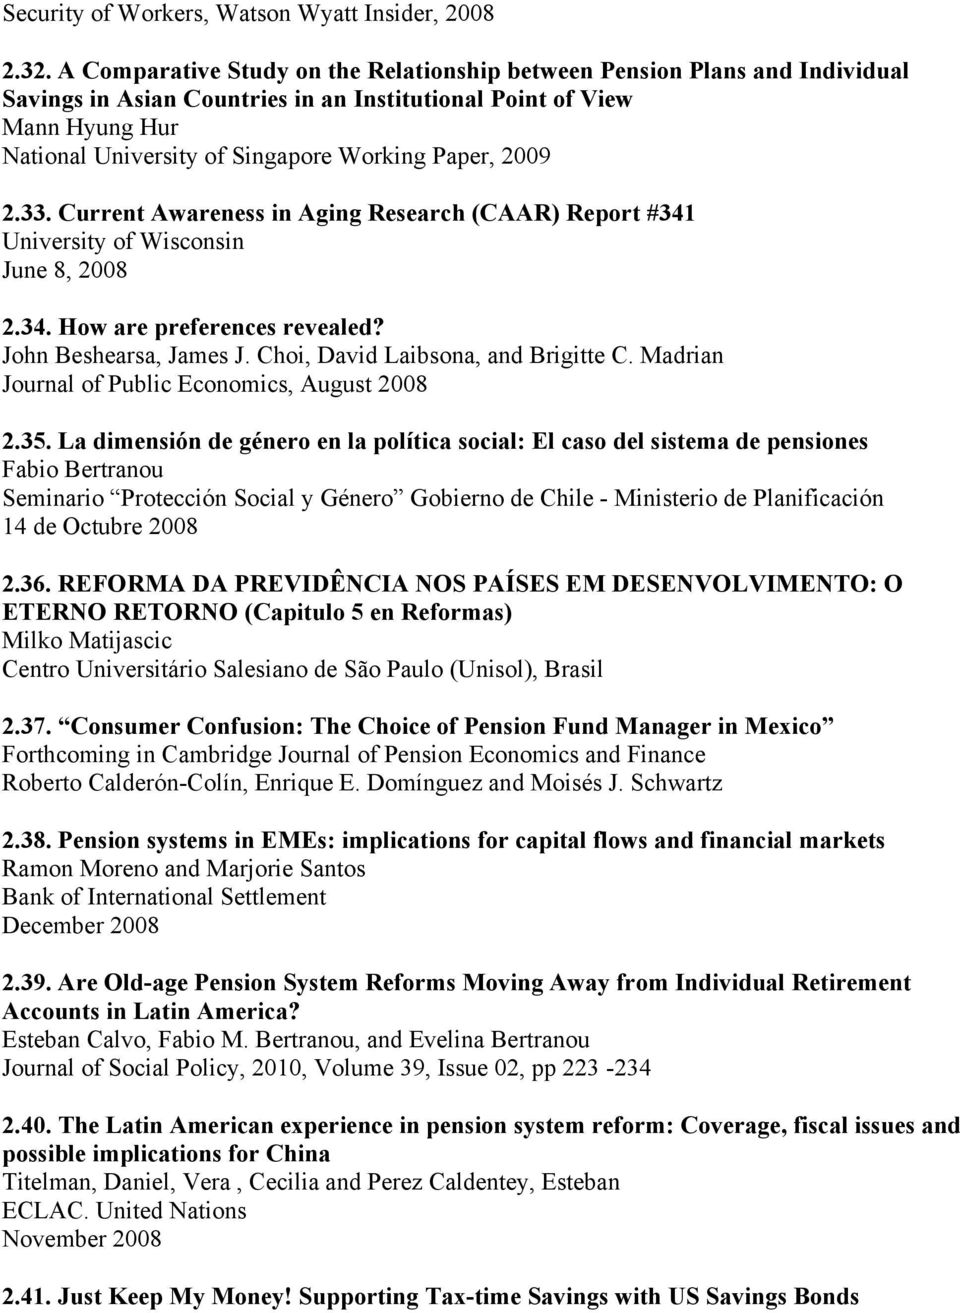 Paper, 2009 2.33. Current Awareness in Aging Research (CAAR) Report #341 University of Wisconsin June 8, 2008 2.34. How are preferences revealed? John Beshearsa, James J.